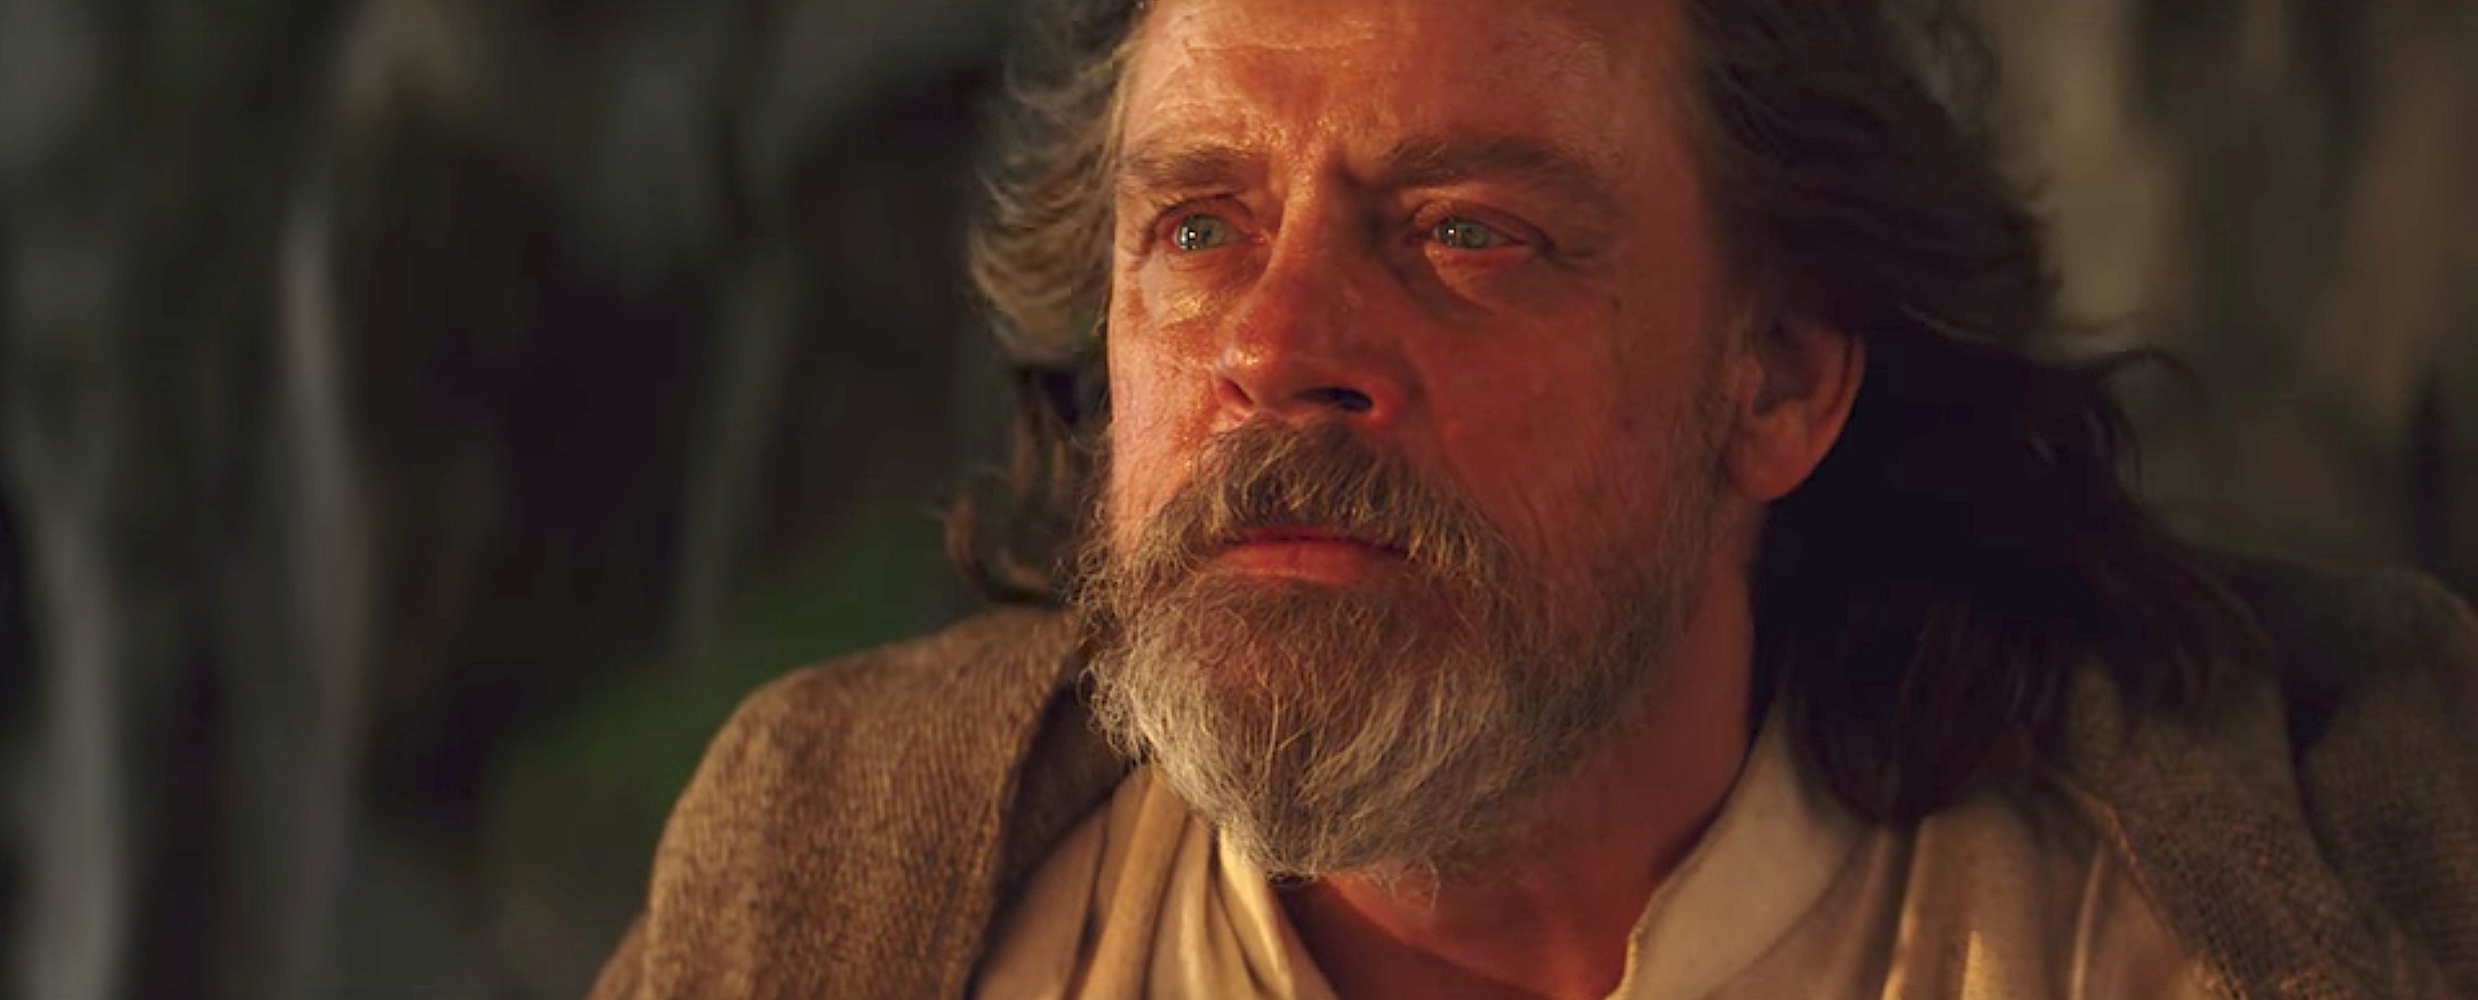 luke-skywalker-the-last-jedi-ending-1565703462.png